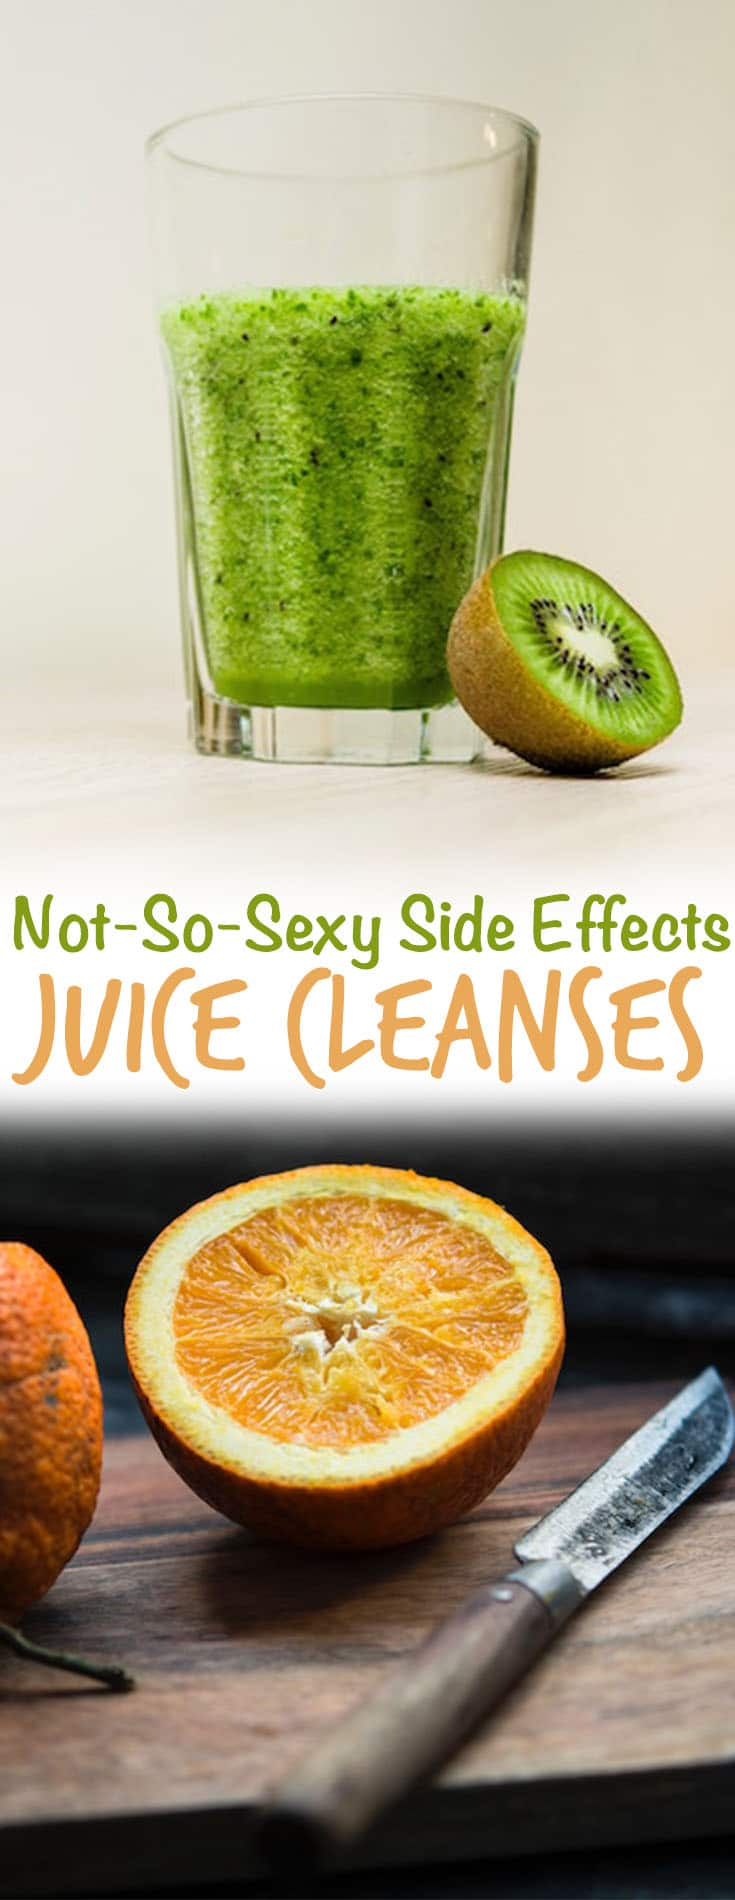 I share the not-so-sexy side effects of juice cleanse diets in this surprising tell-all!